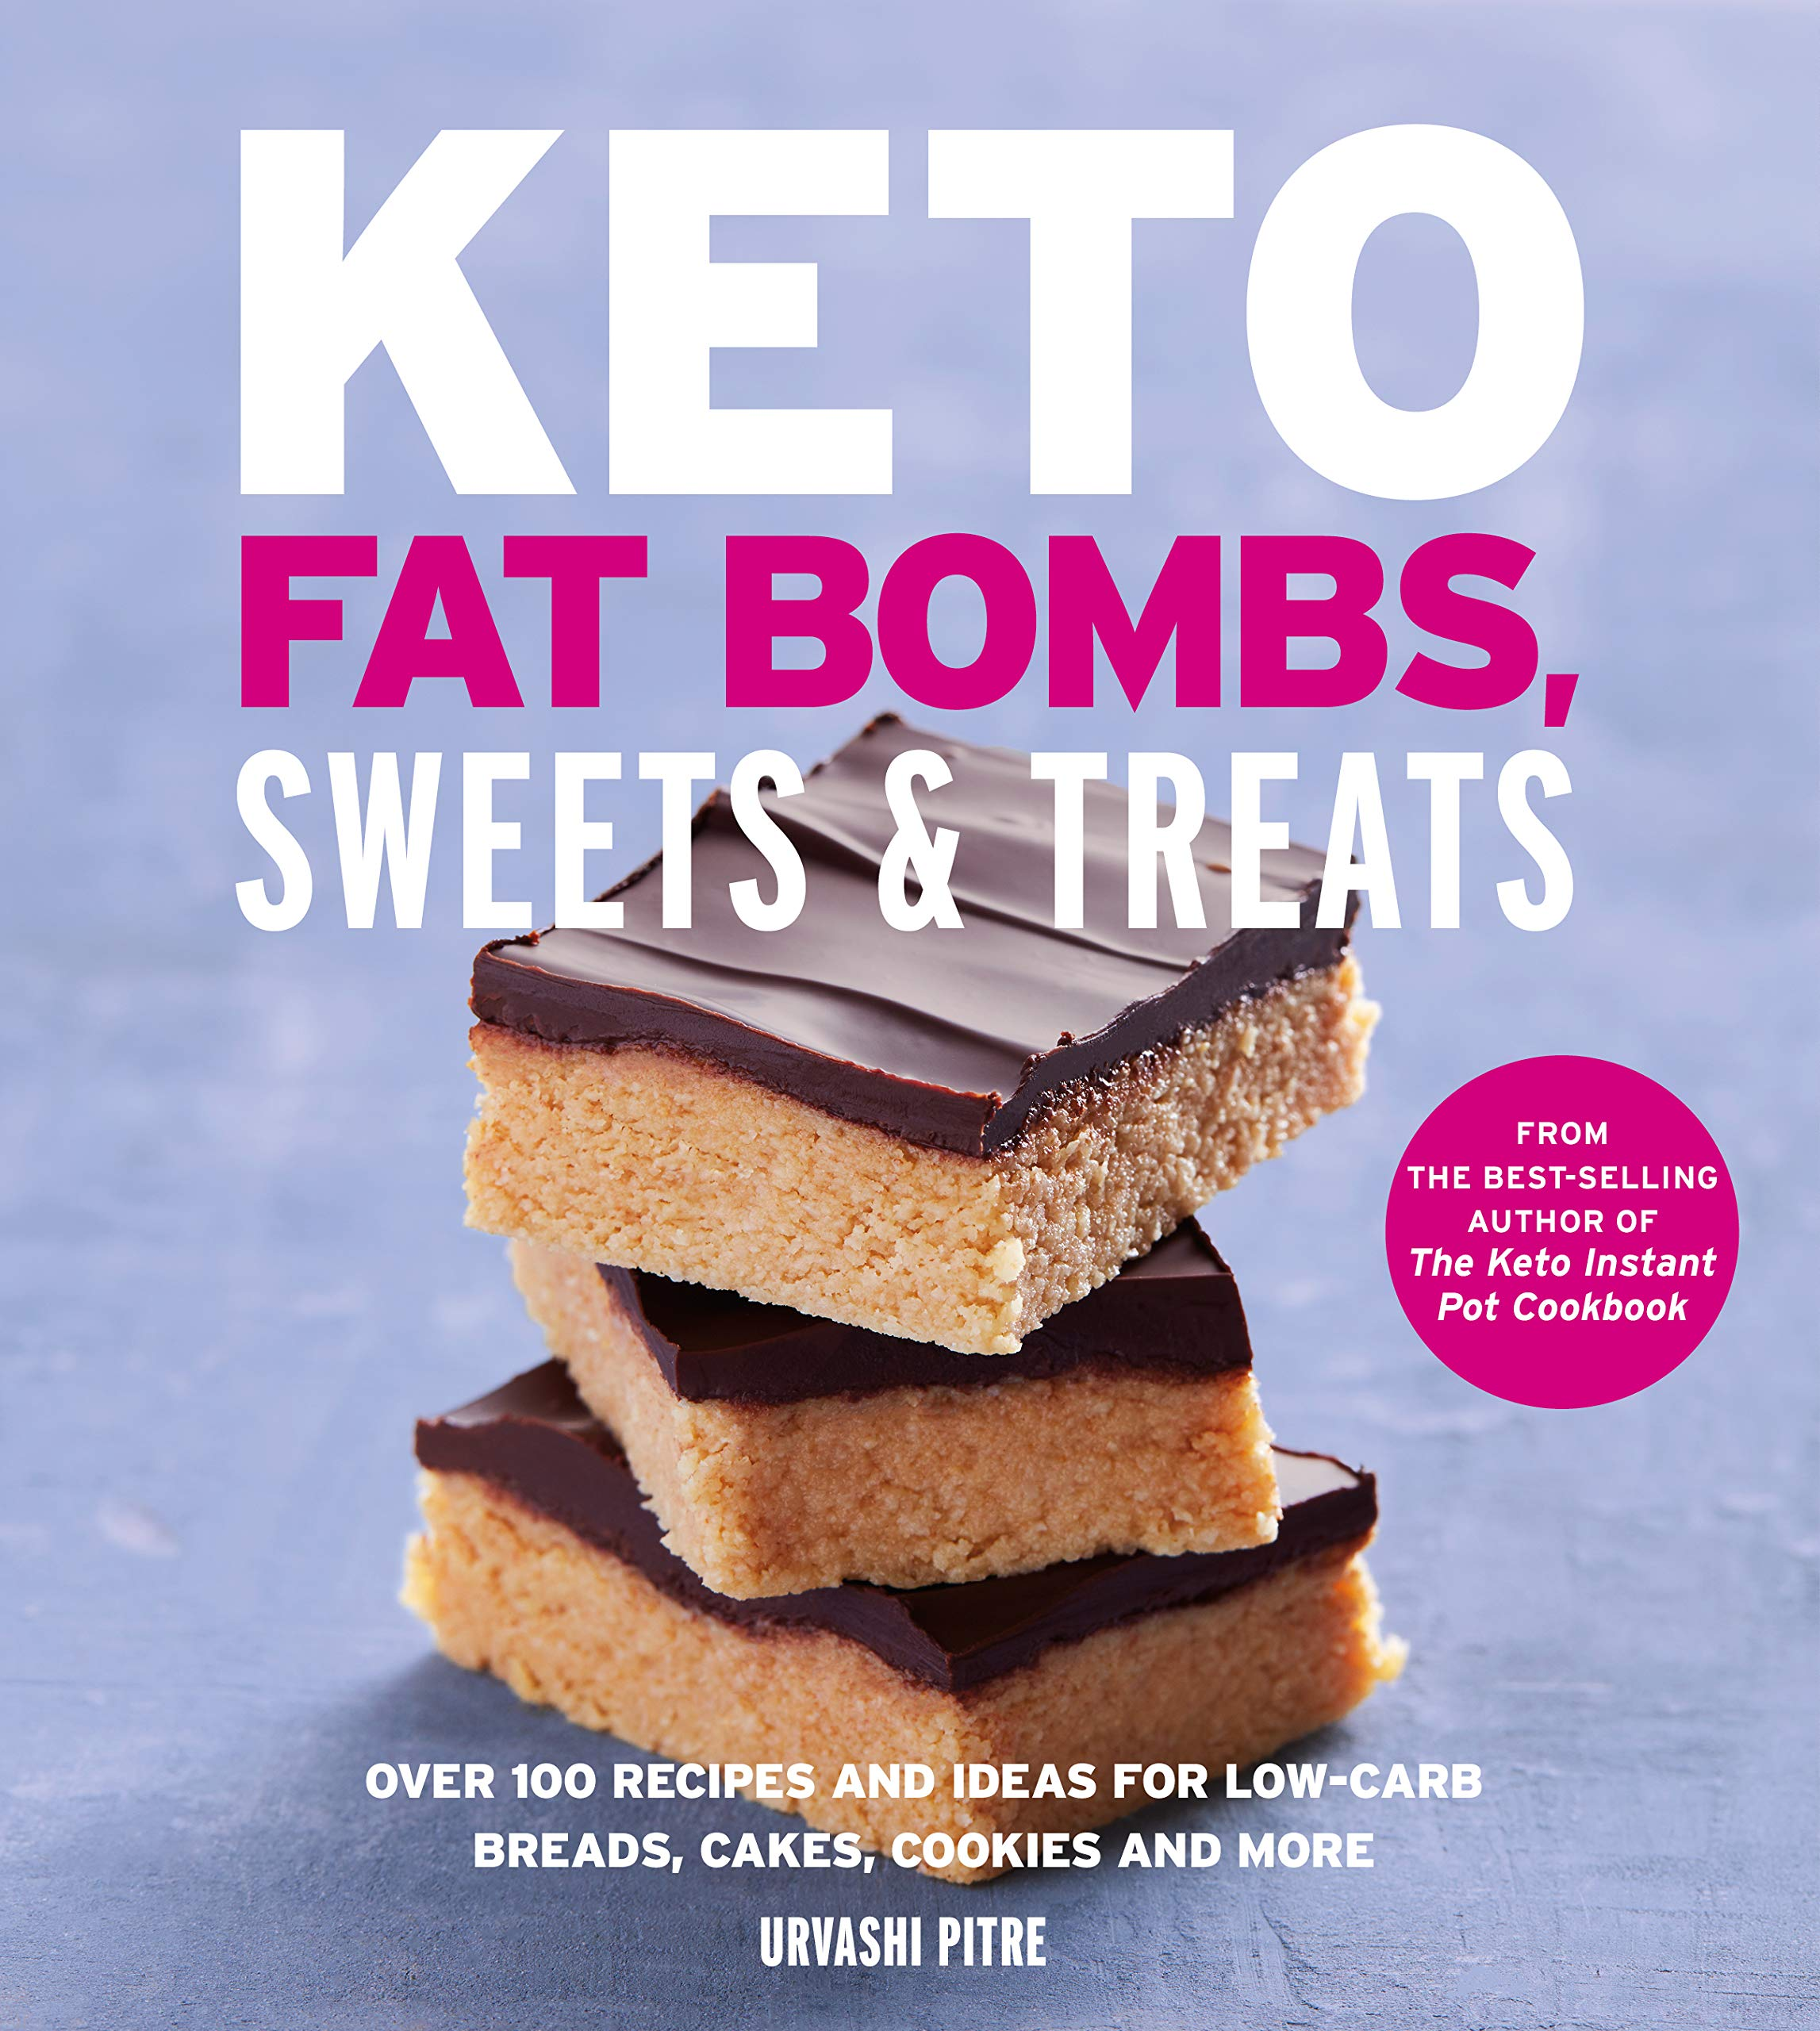 Keto-Friendly Dessert Recipes Deals Memorial Day